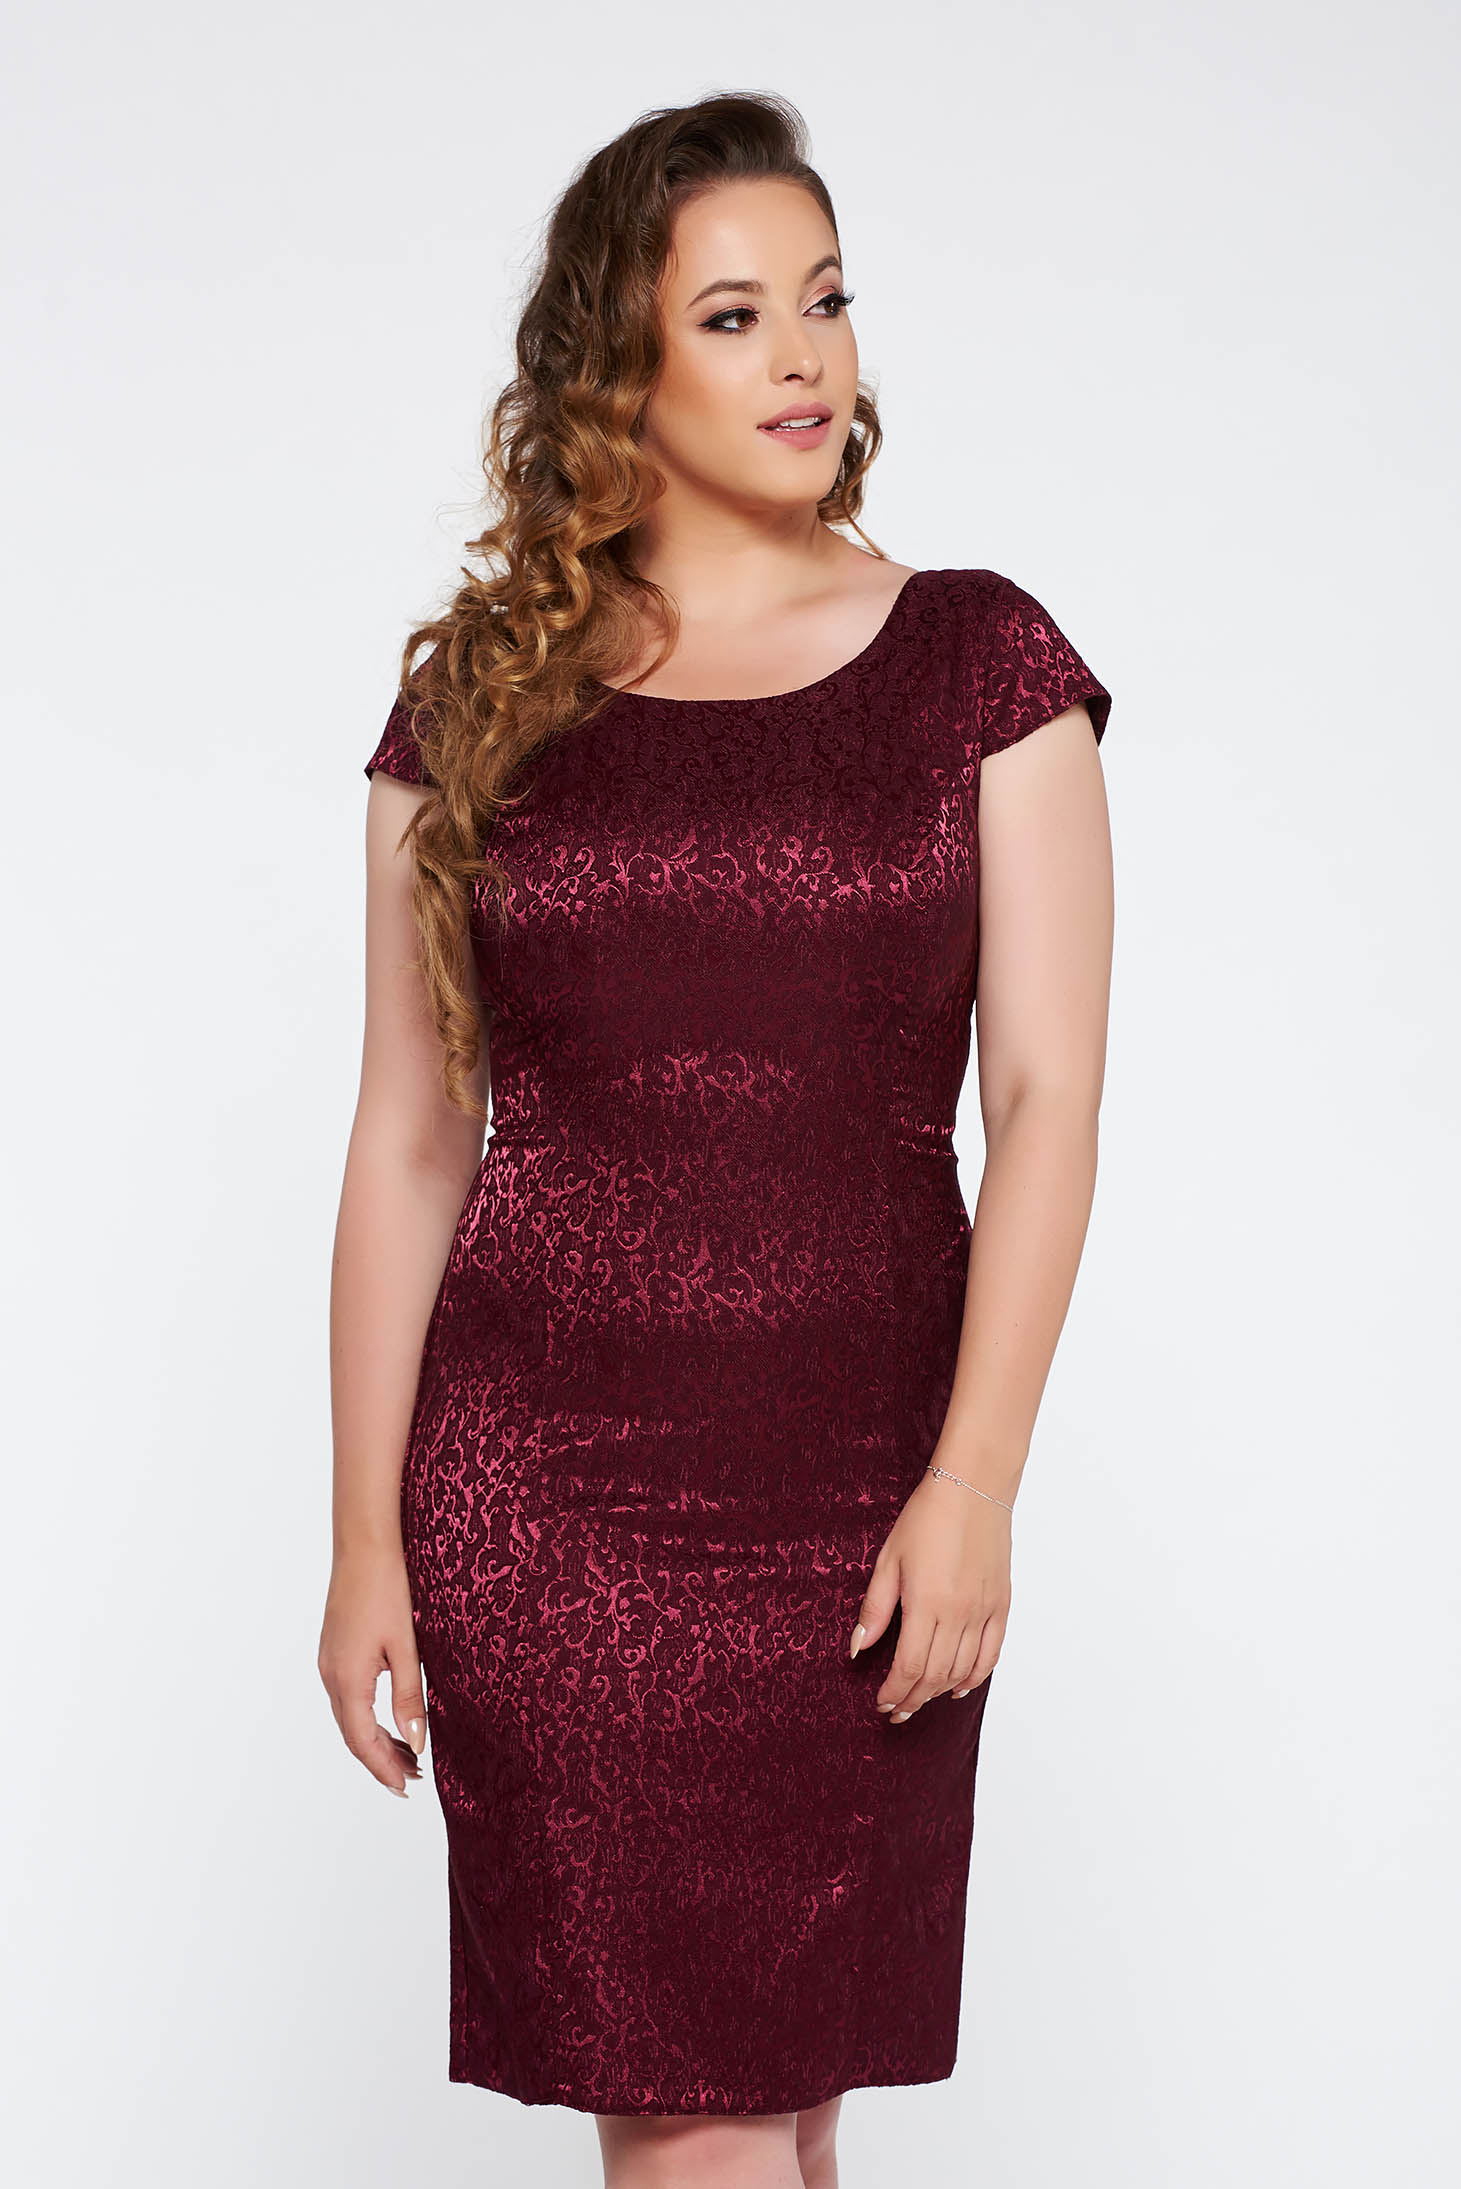 Burgundy elegant pencil dress from jacquard short sleeves